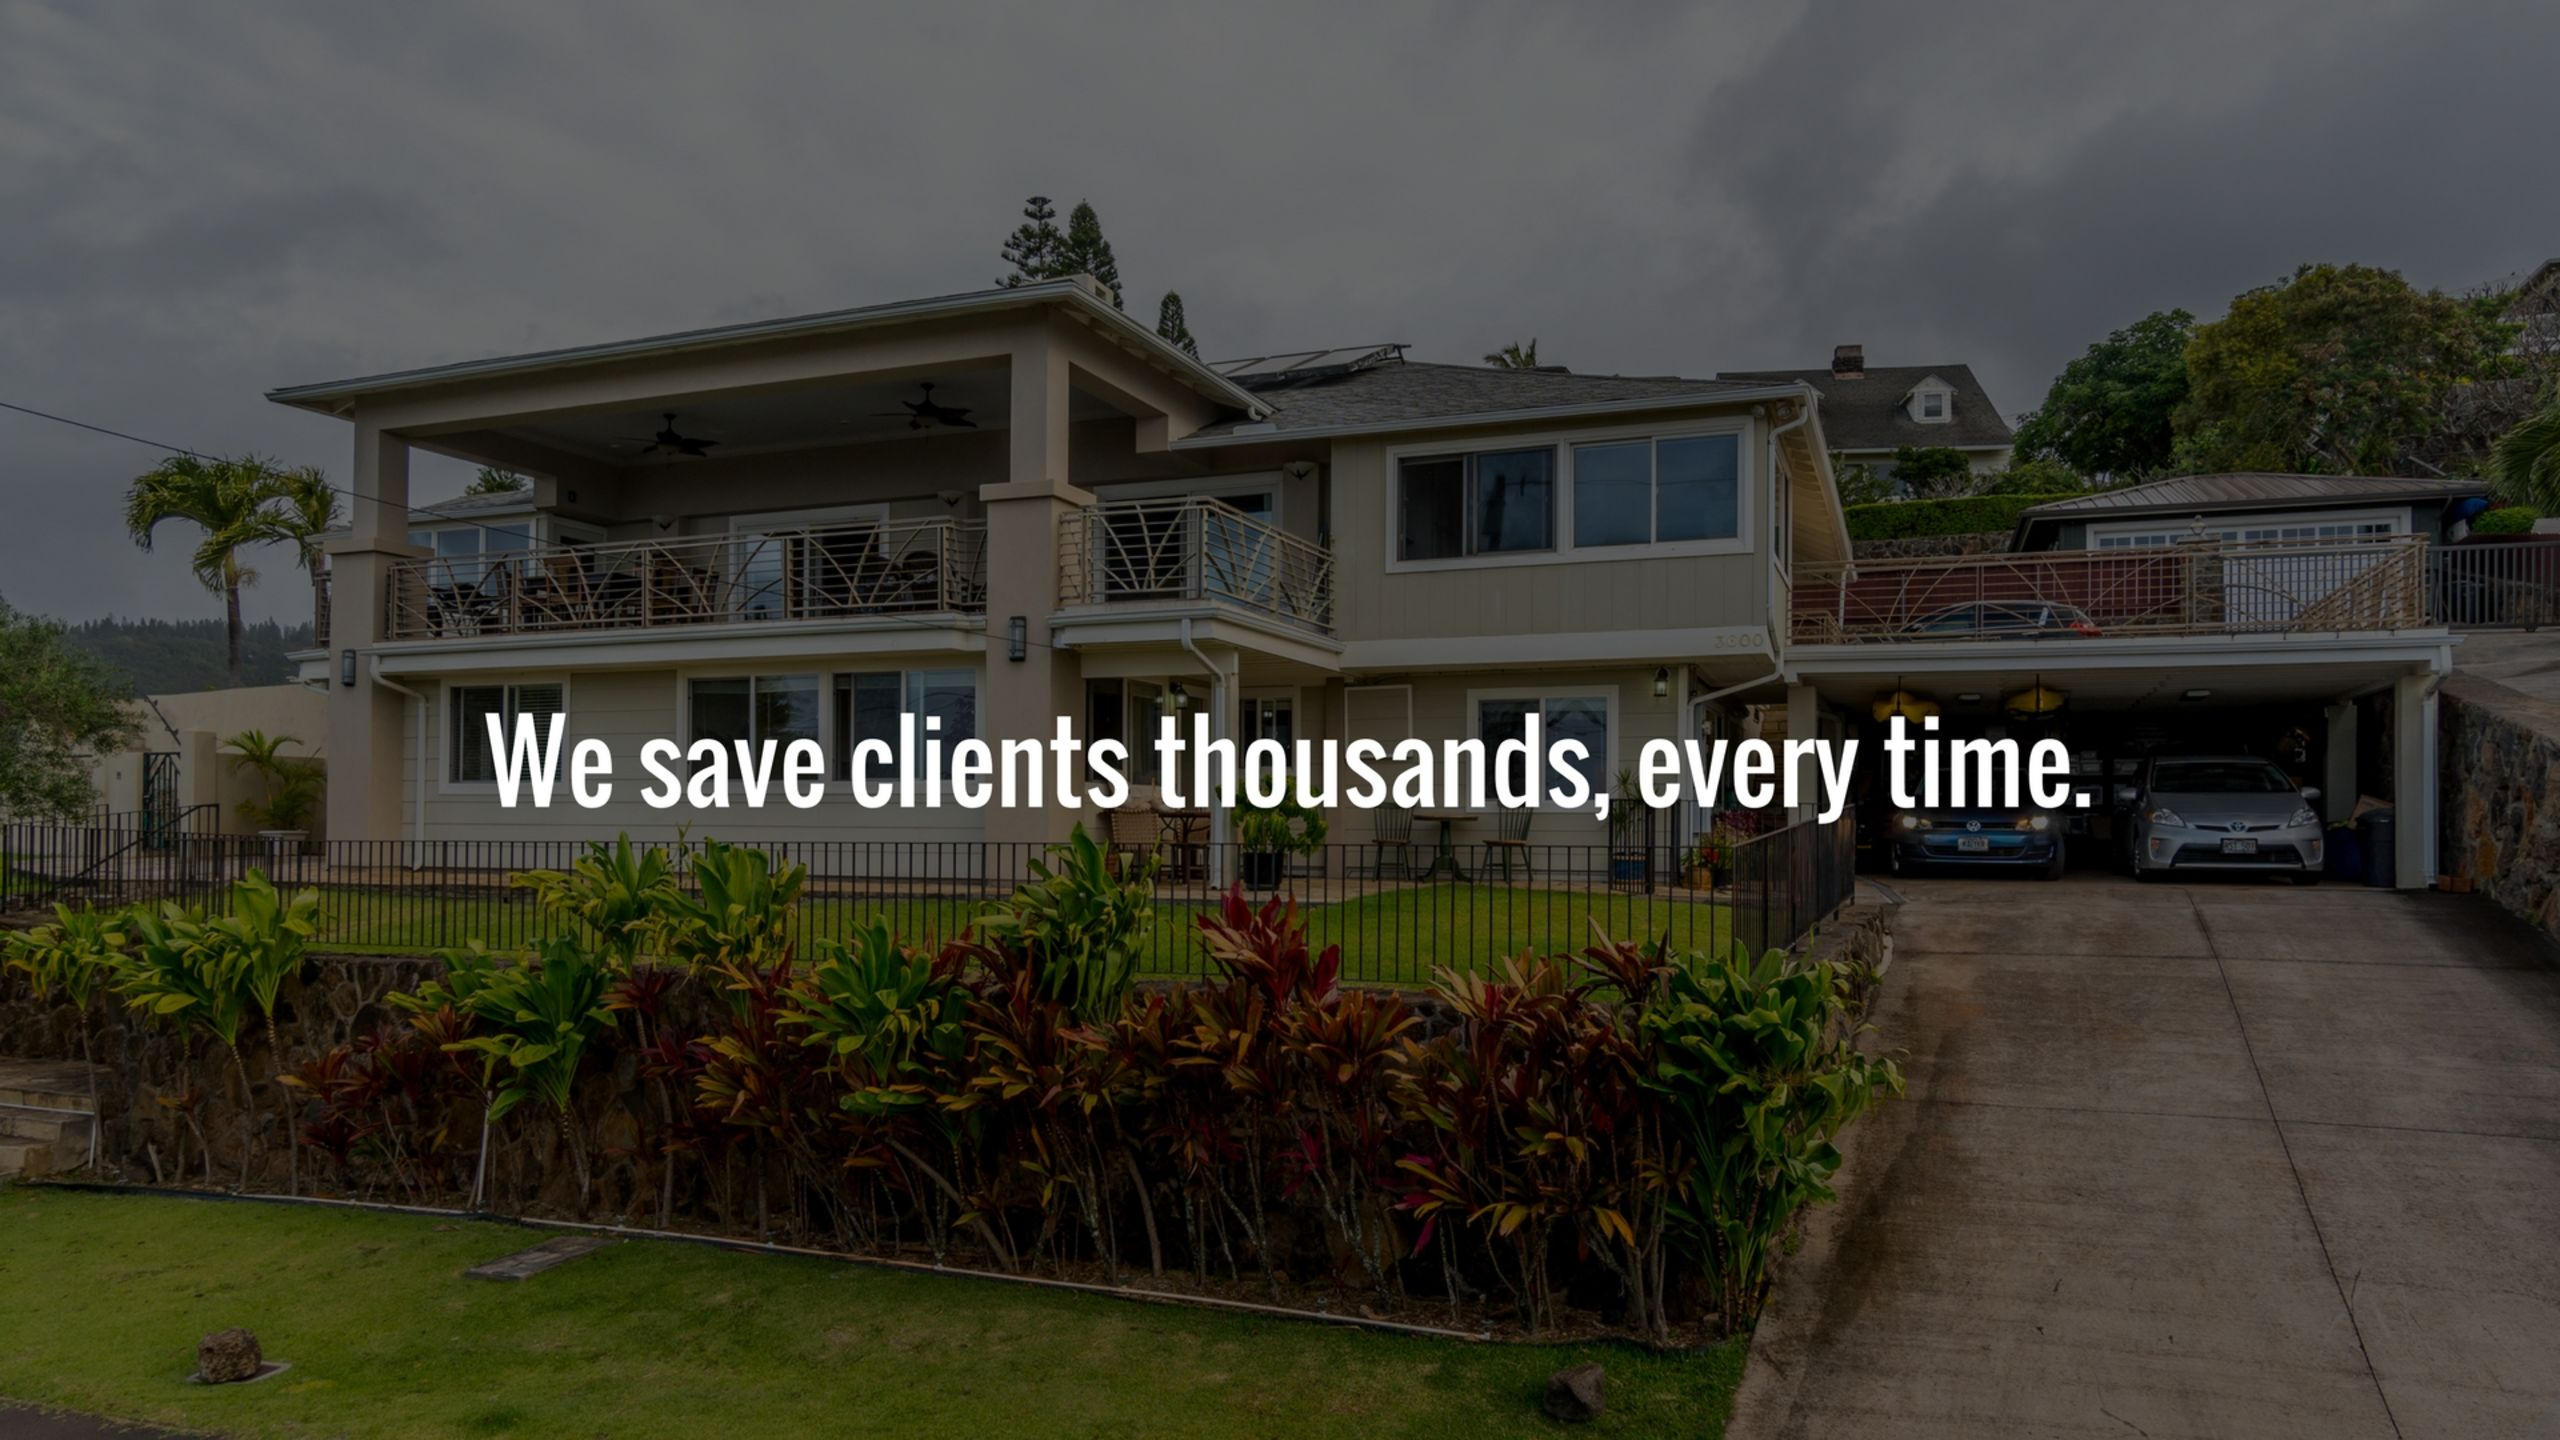 We save clients thousands, every time.